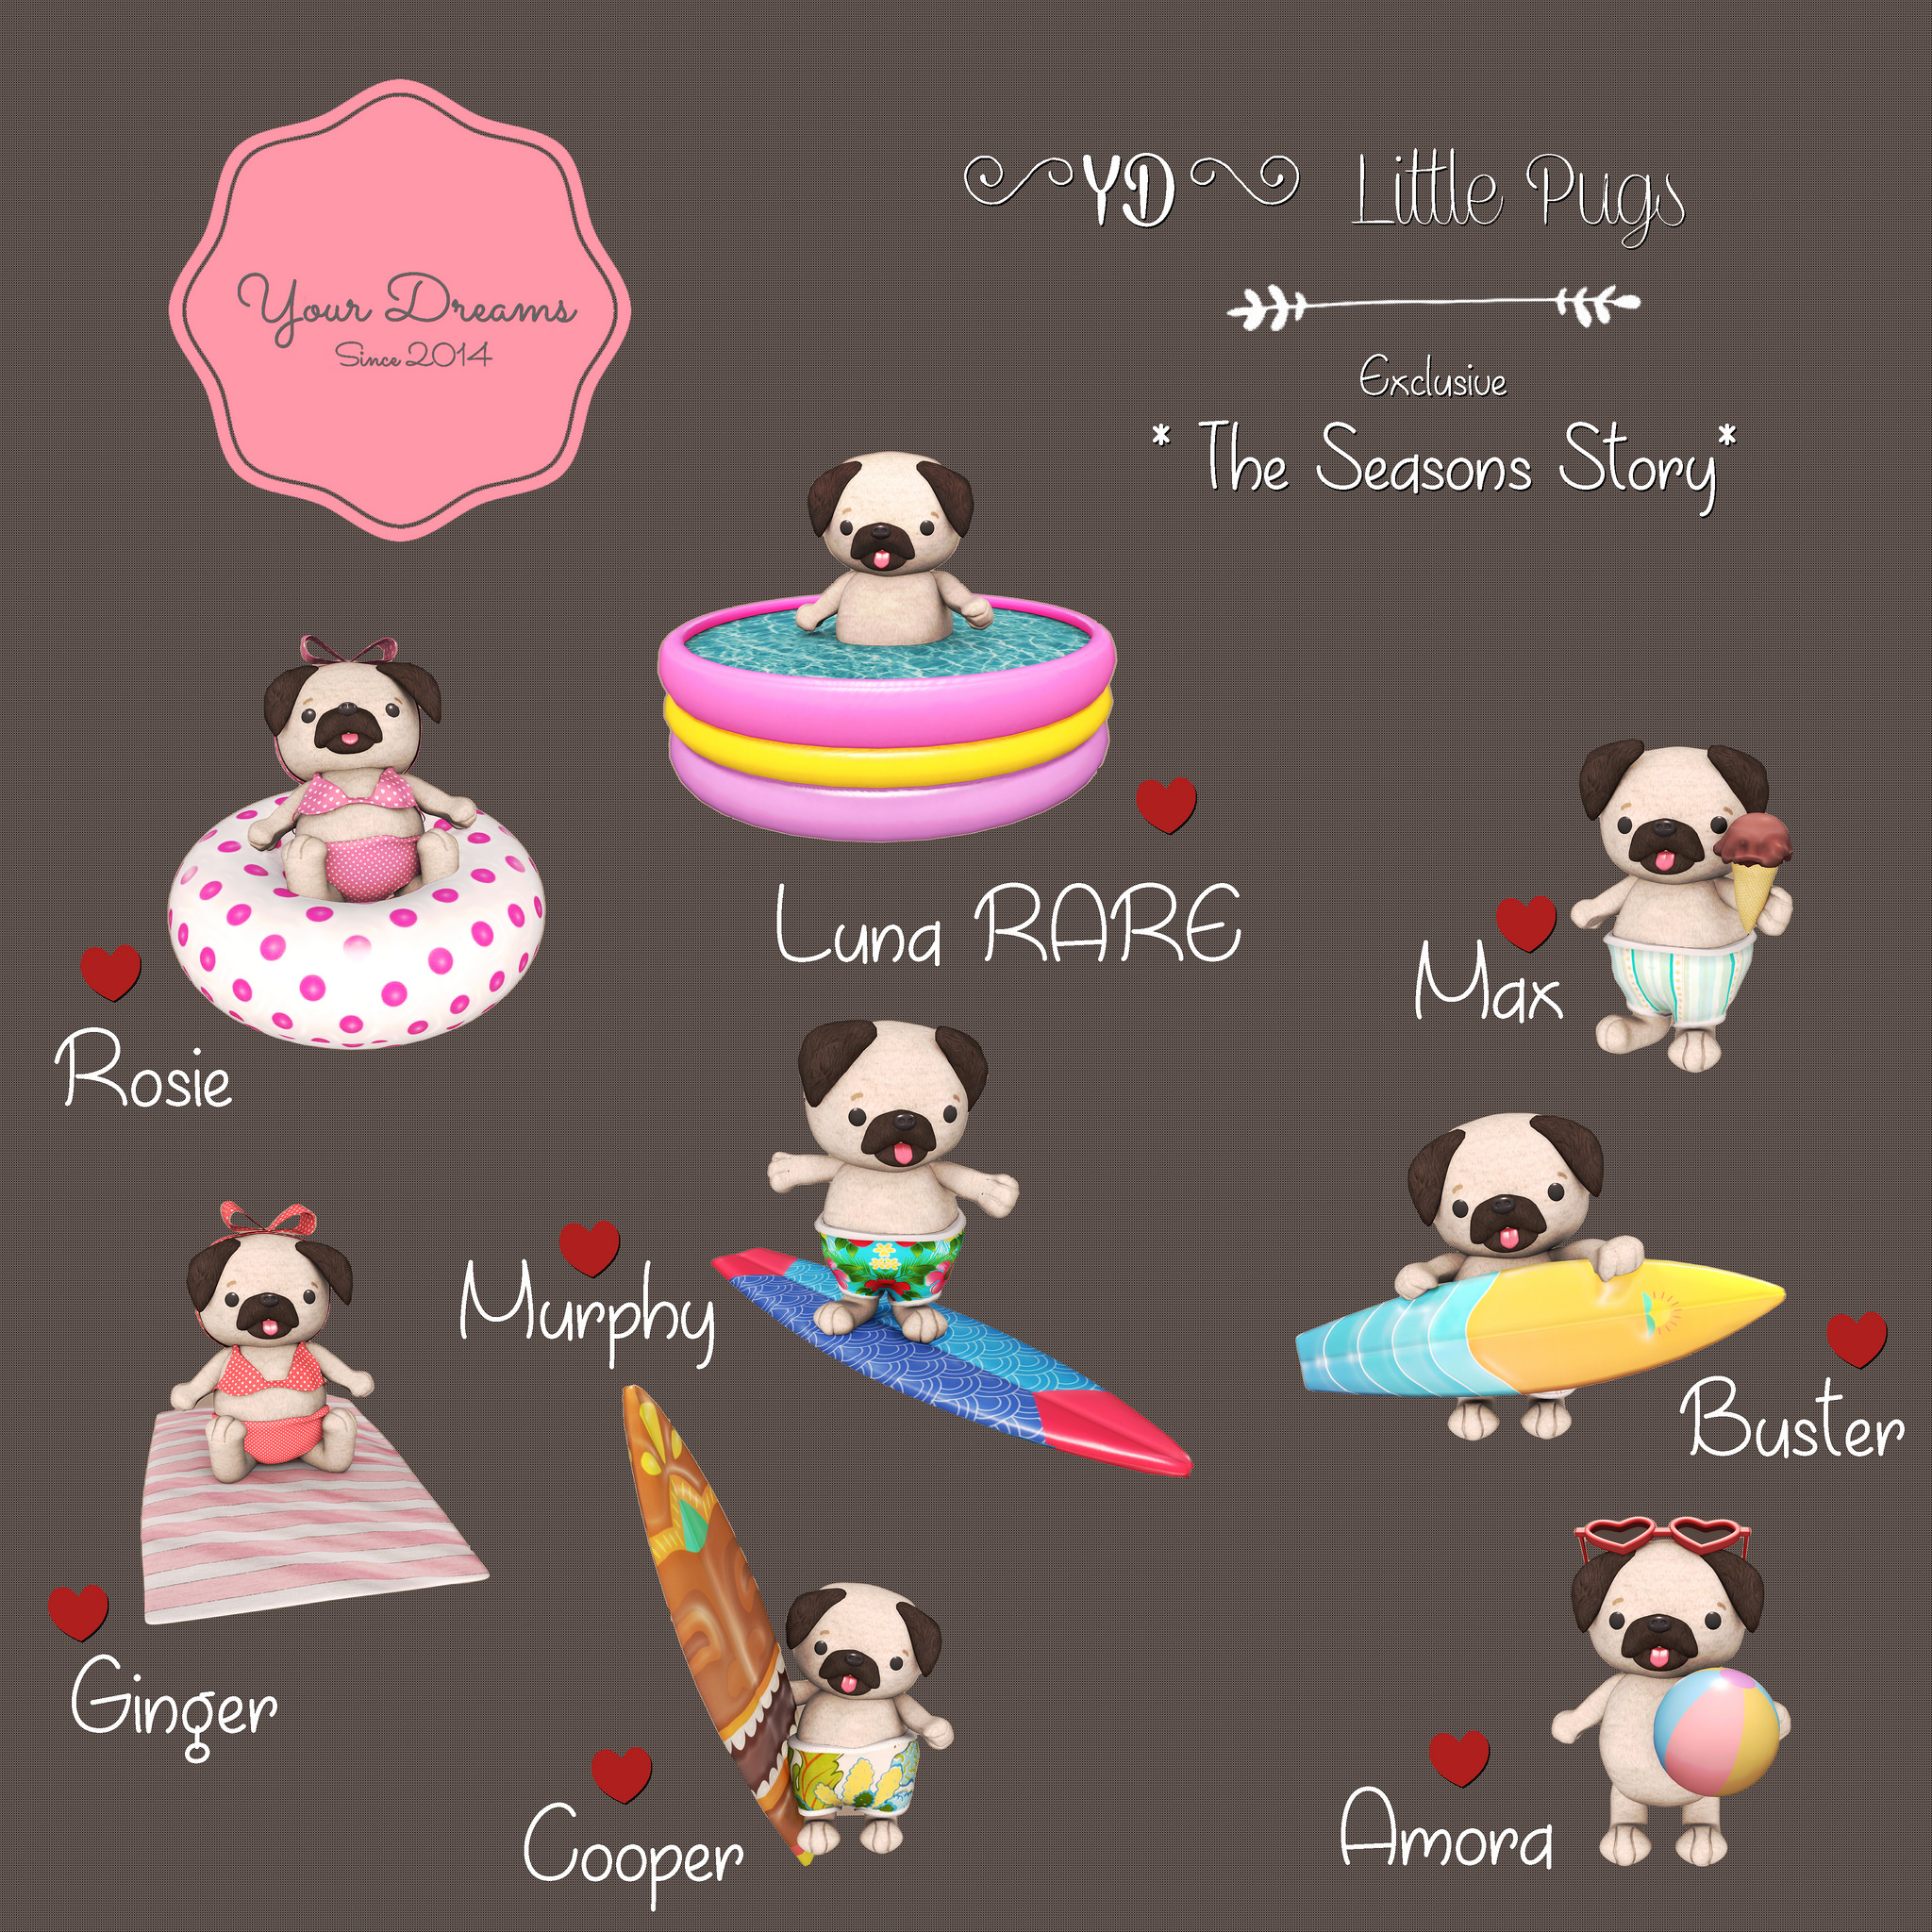 {YD} Little Pugs